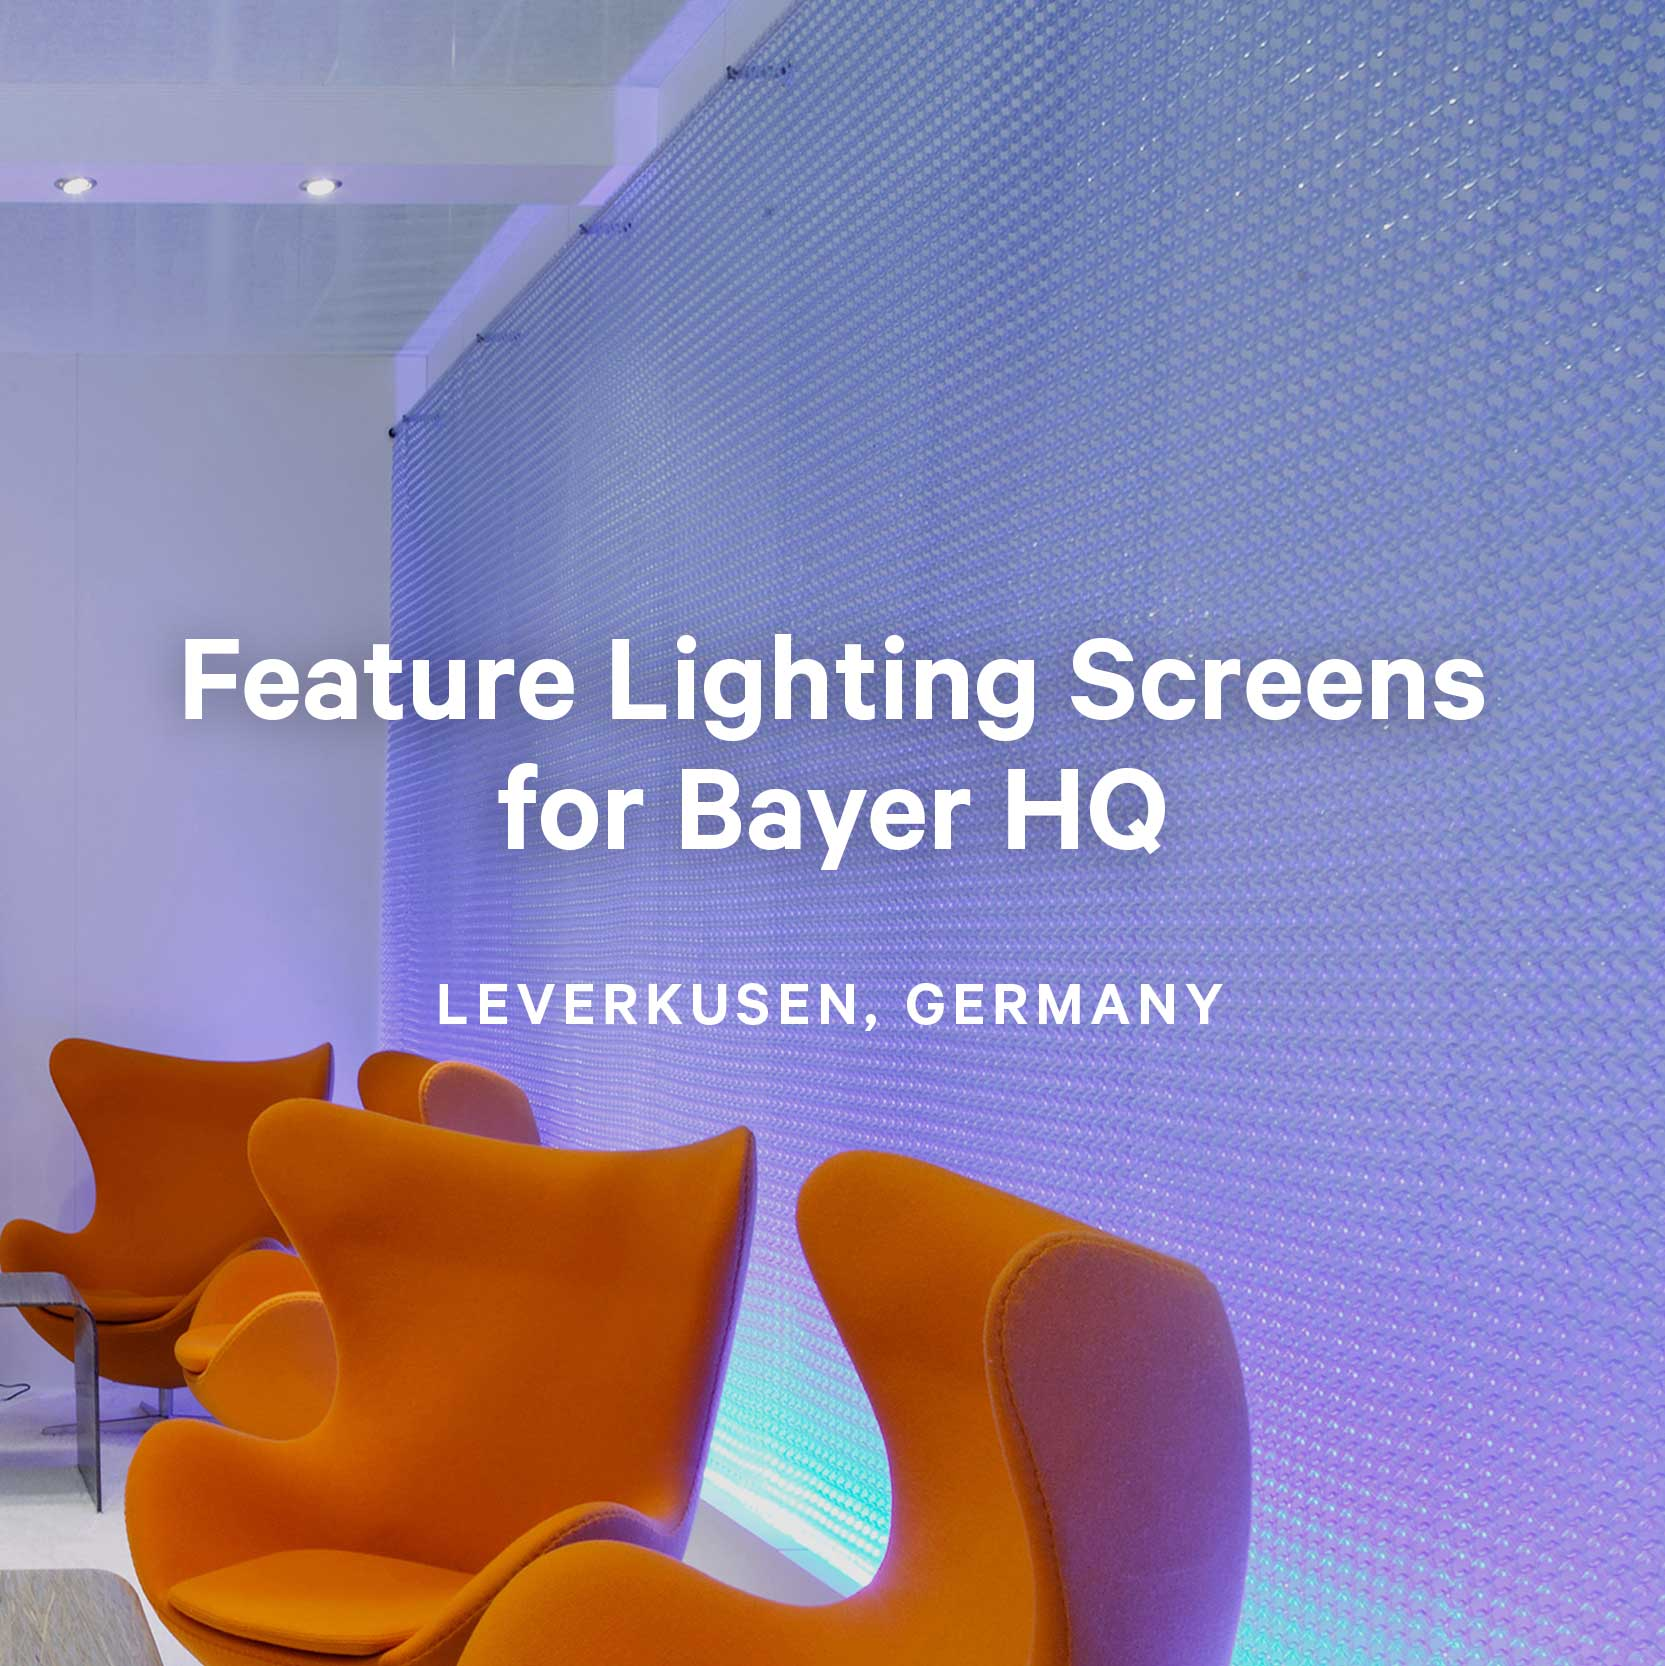 Feature Lighting Screens for Bayer HQ